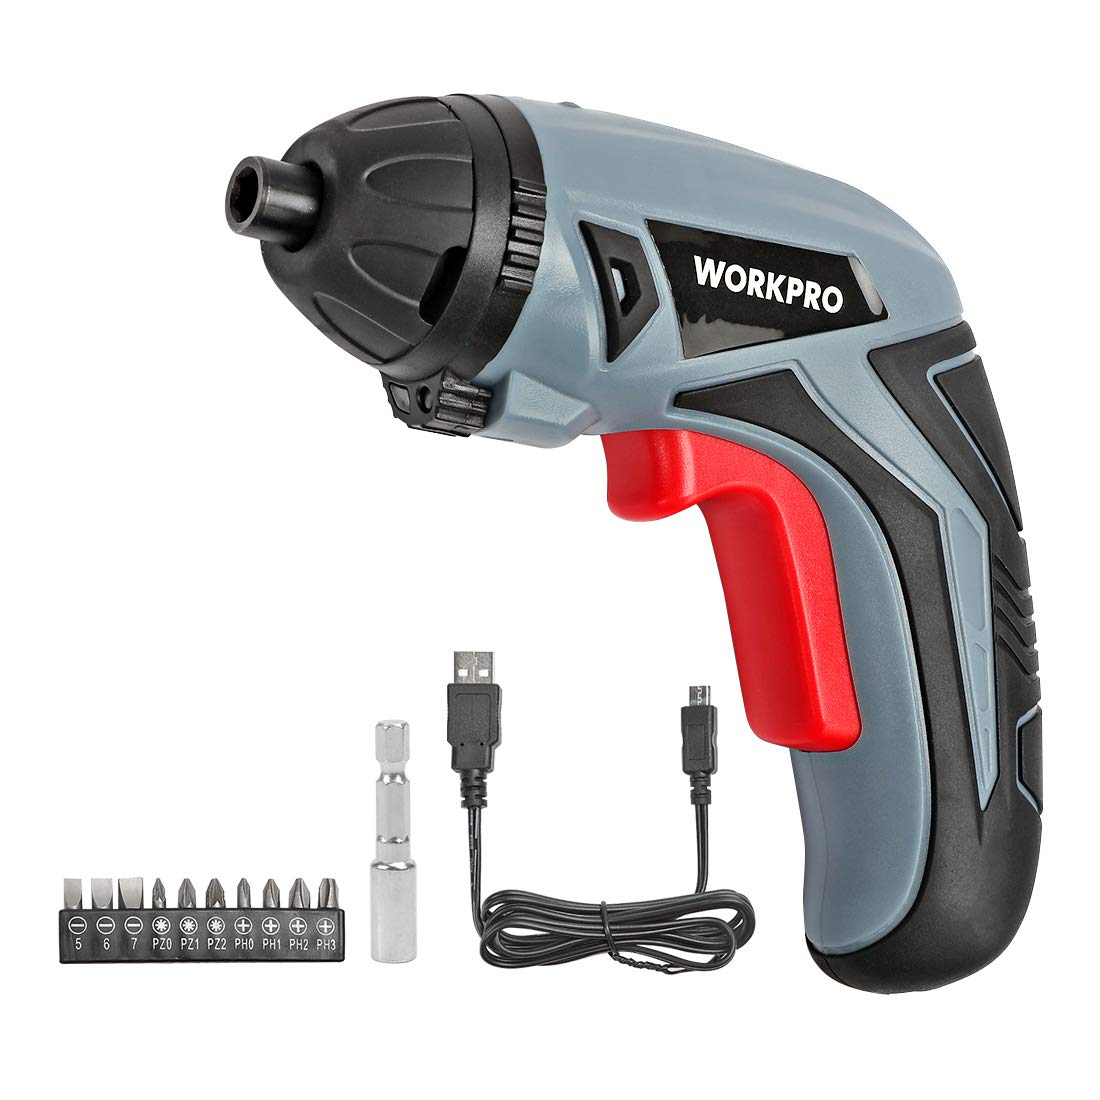 WORKPRO Cordless Rechargeable Power Screwdriver, Powered by 3.6V Li-ion Battery, USB Charging Cable and 10-Piece Bits Included by WORKPRO